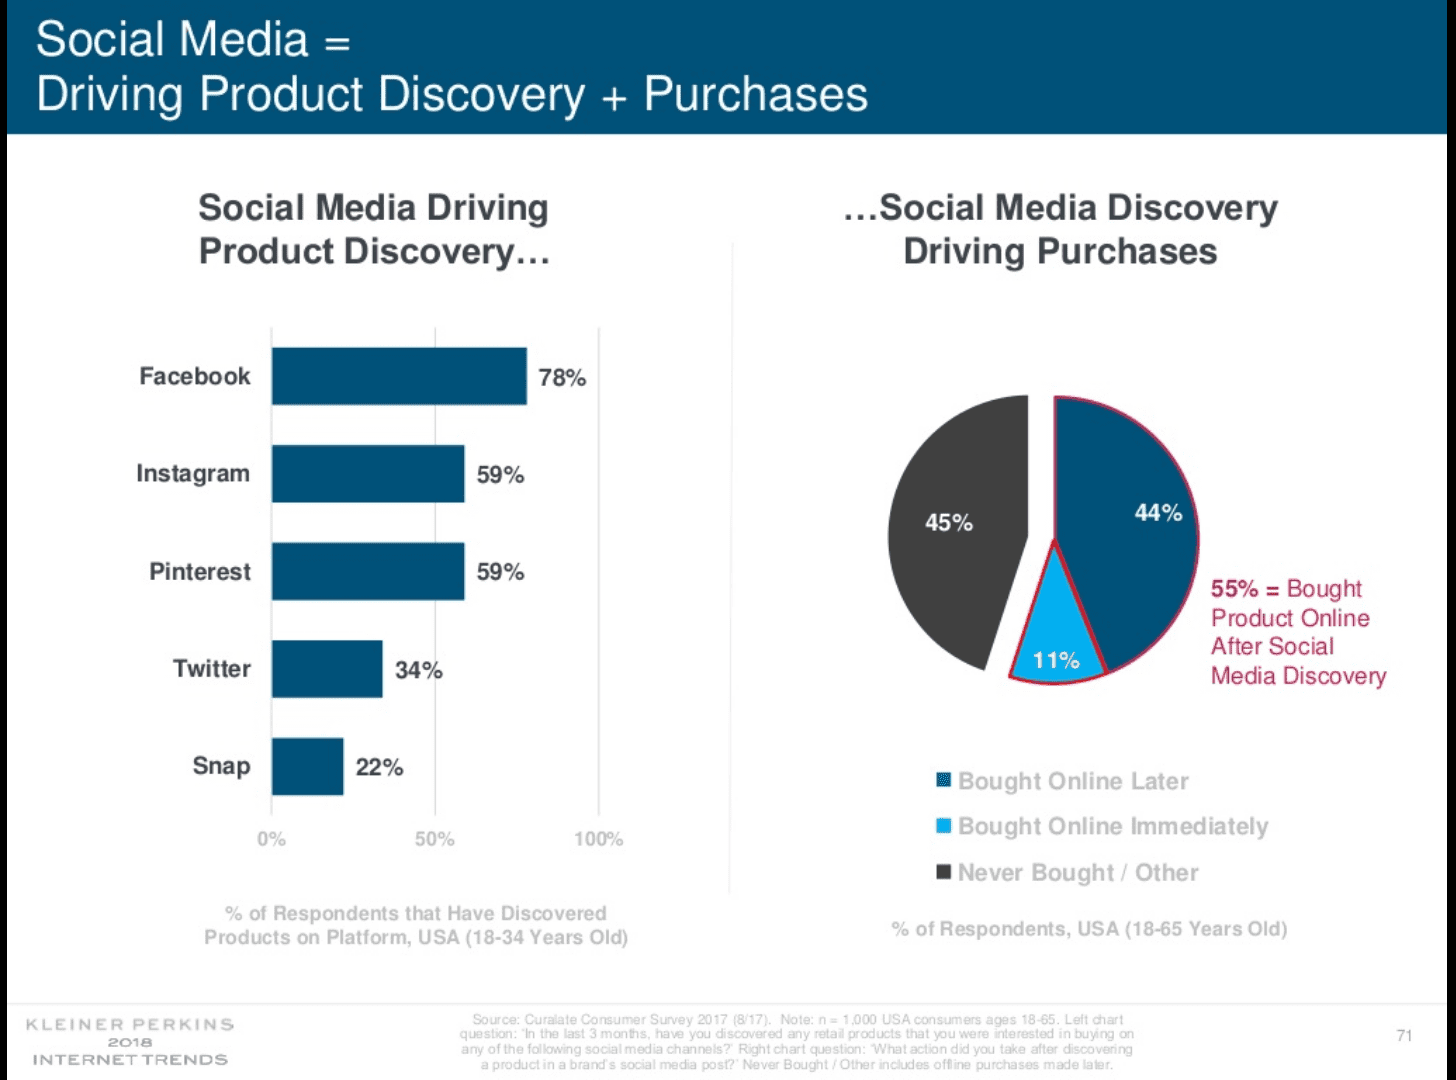 According to Kleiner Perkins Caufield & Byers' report (slide 71), 78 percent of Facebook users aged 18-34 discovered products there. Fifty-five percent of U.S. respondents aged 18-65 purchased products online after initially seeing them on social channels.